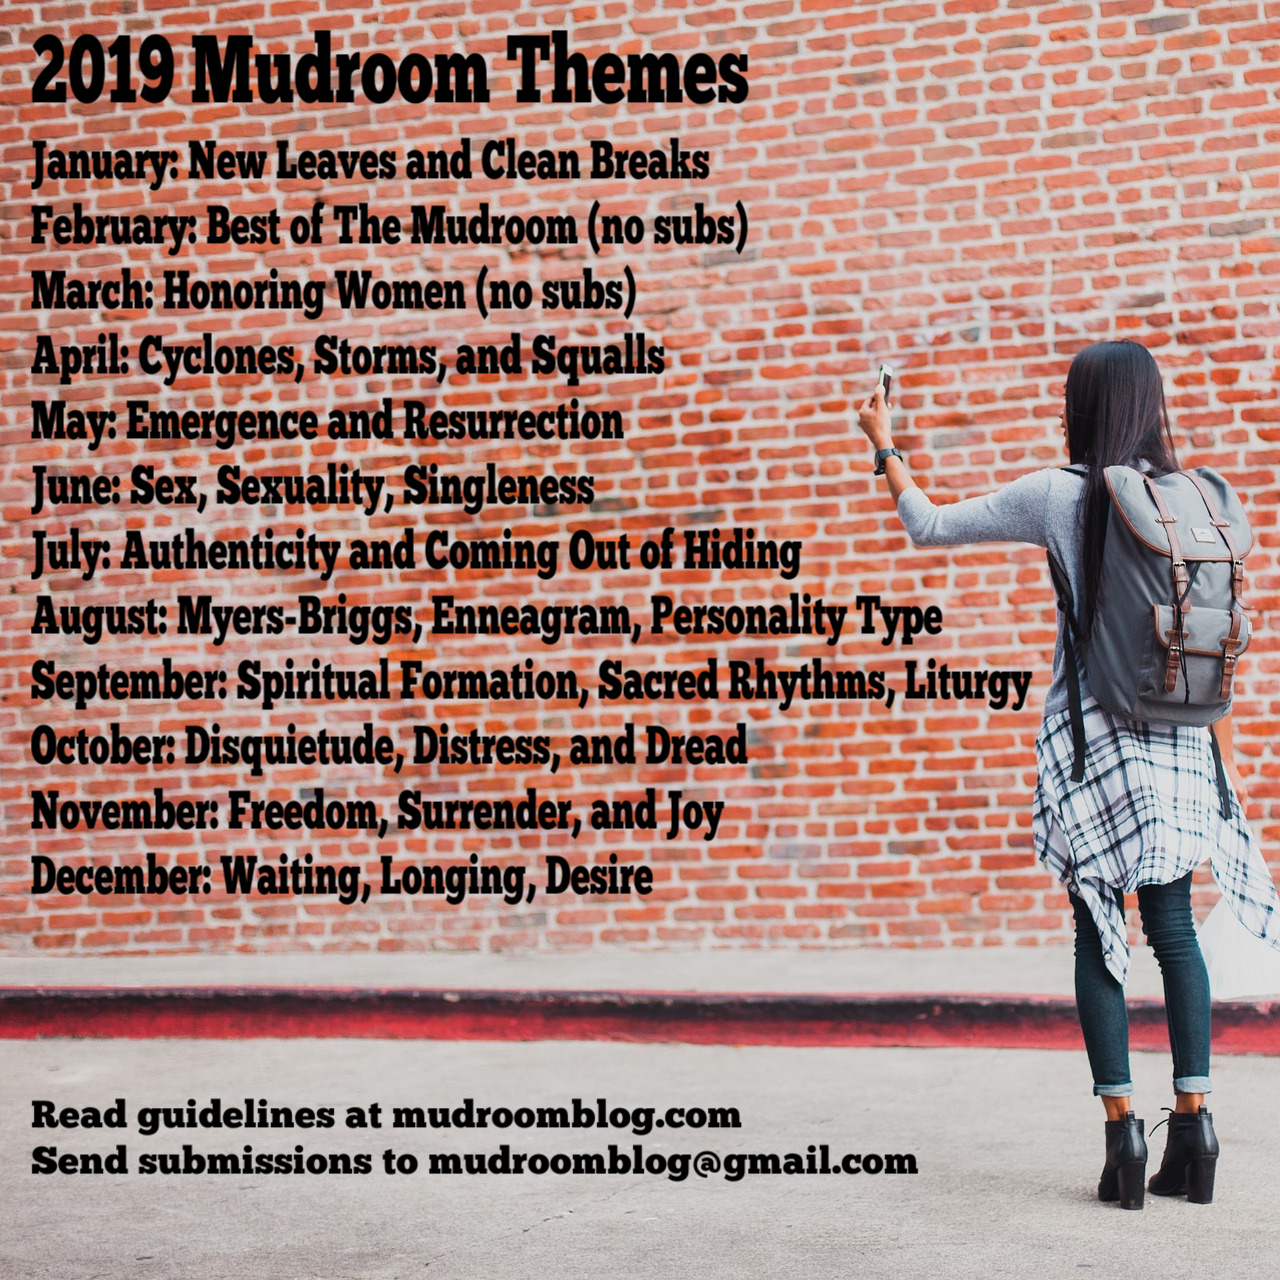 2019 Mudroom Themes